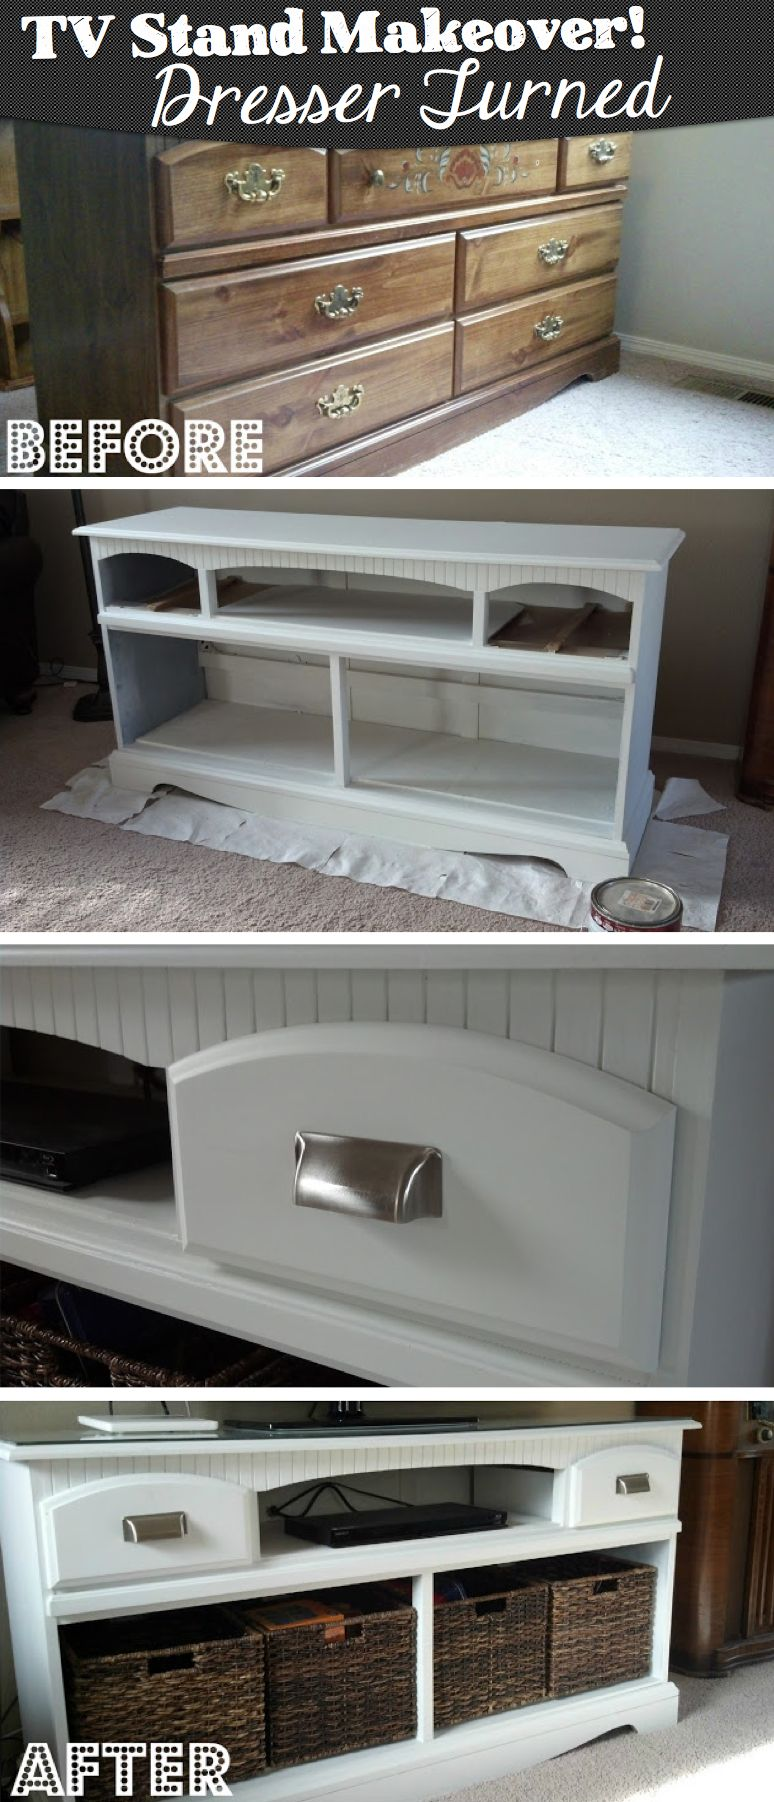 Repurpose an old dresser and turn it into a brand new tv cabinet